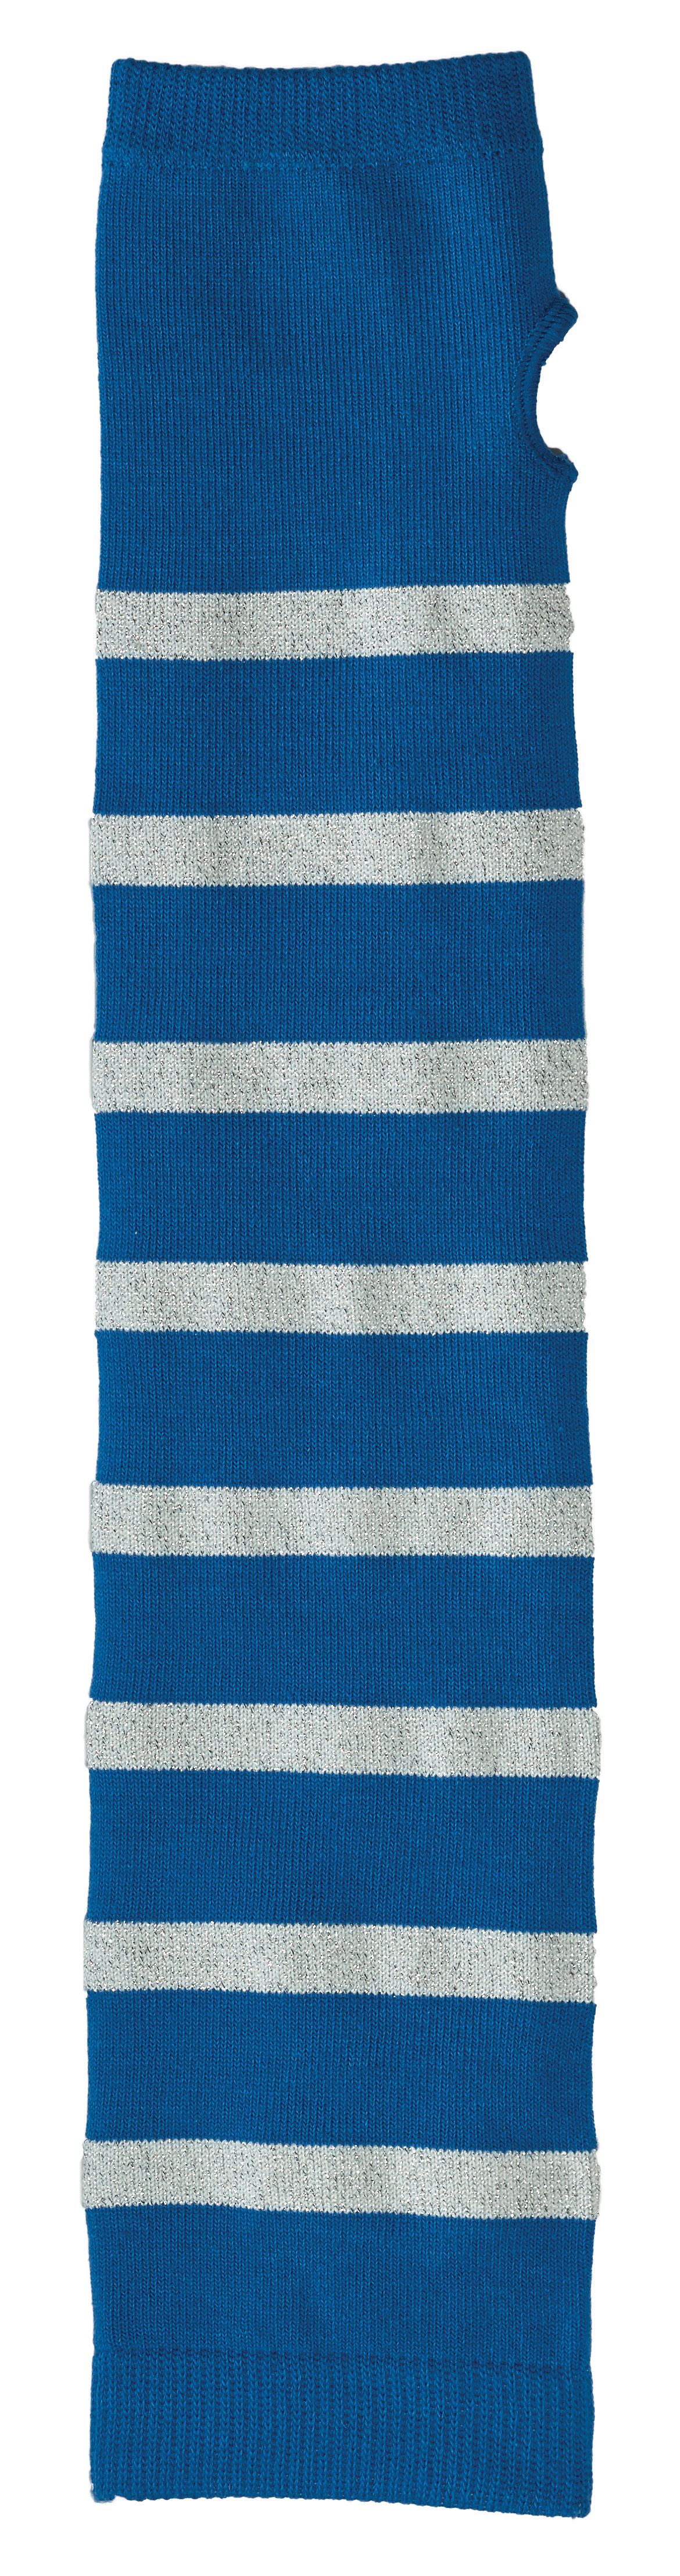 Striped Arm Socks